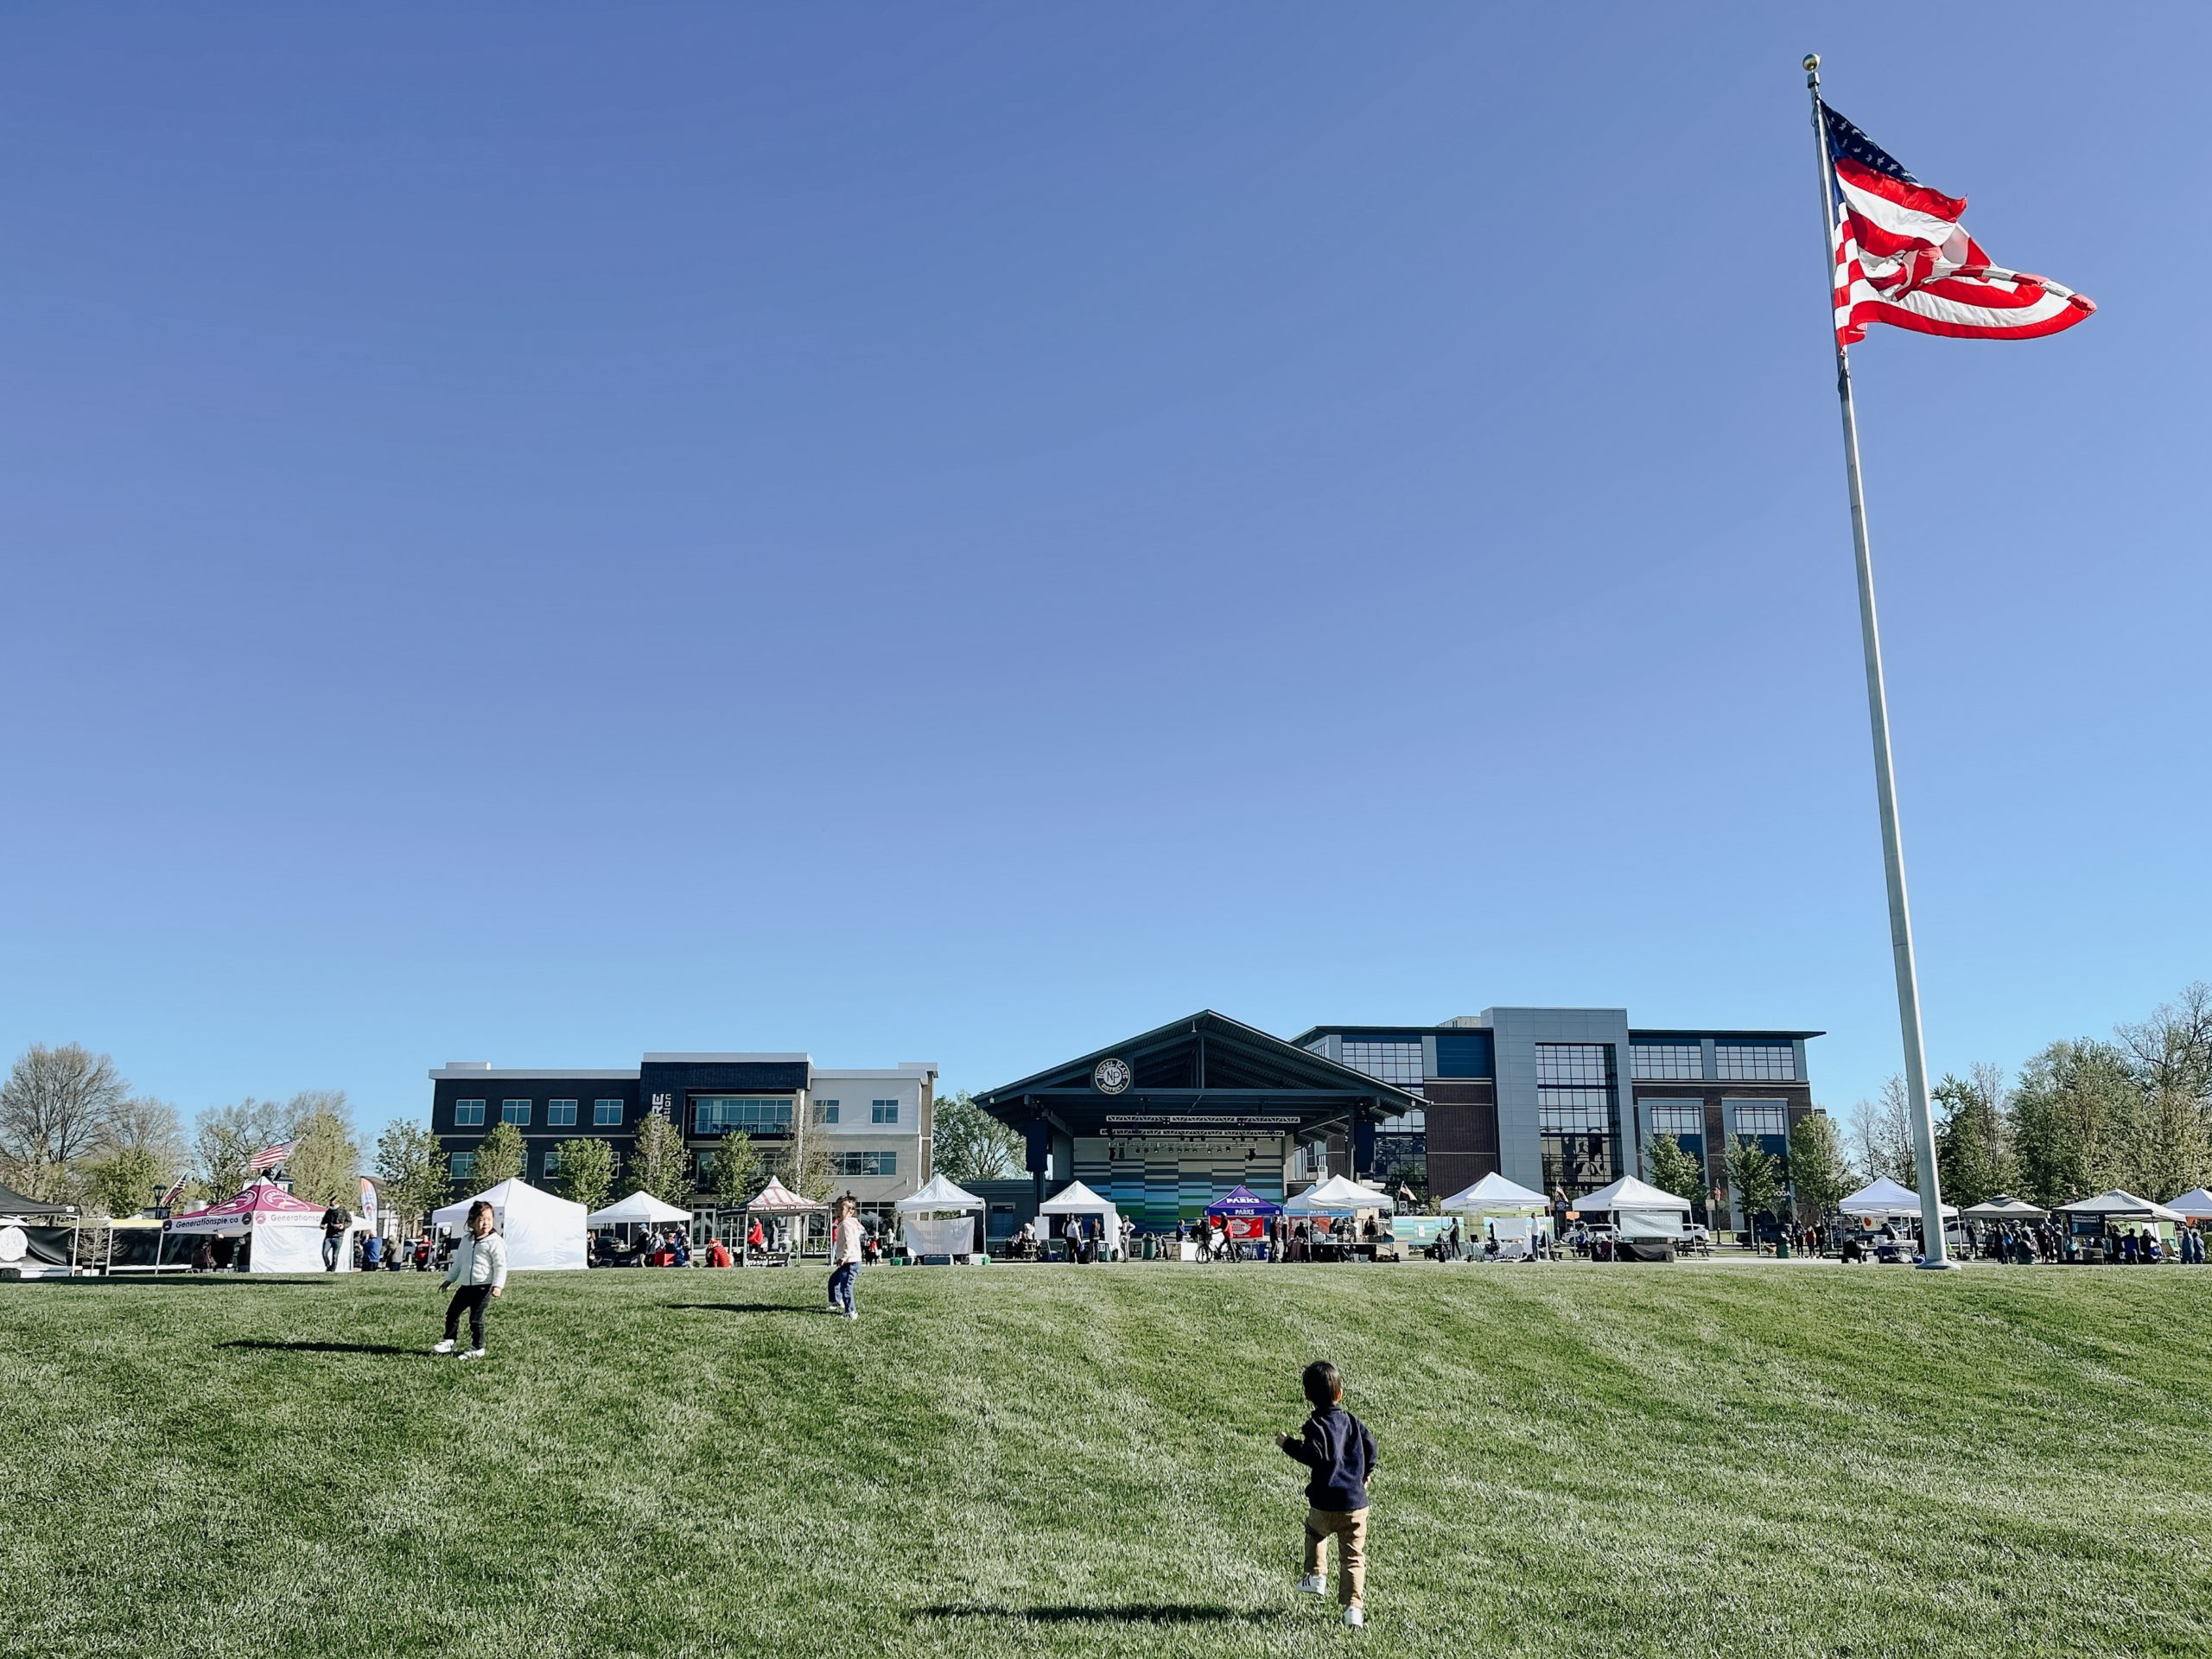 a far away view of the fishers farmers market